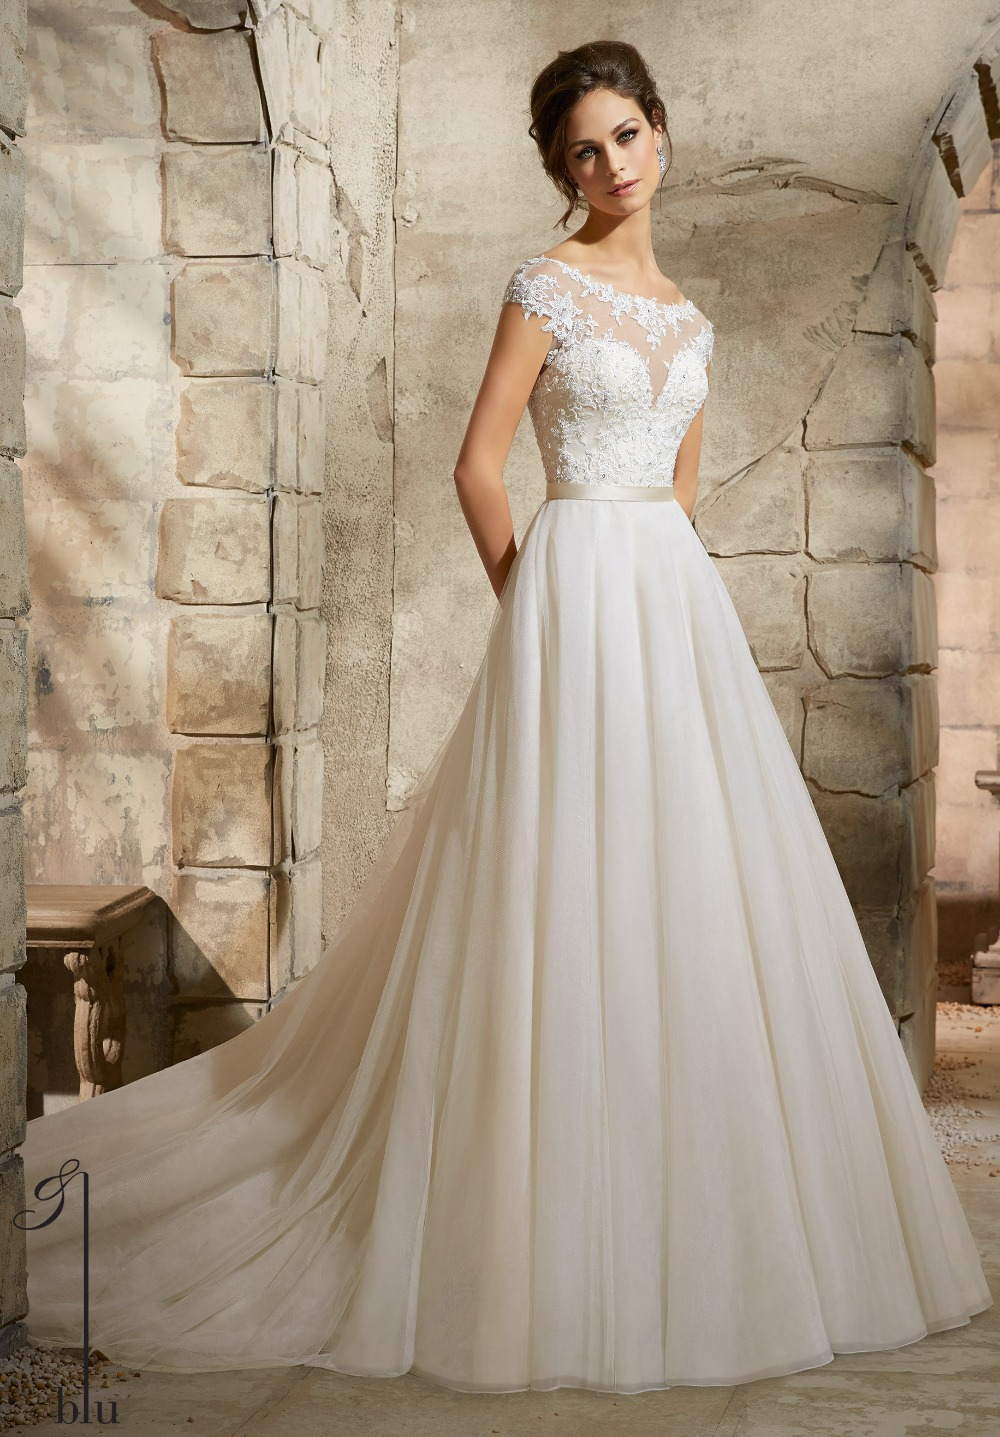 Lace Wedding Dress With Cap Sleeves Style D1919 : Line cap sleeves open back sexy ivory lace tulle wedding dresses gown